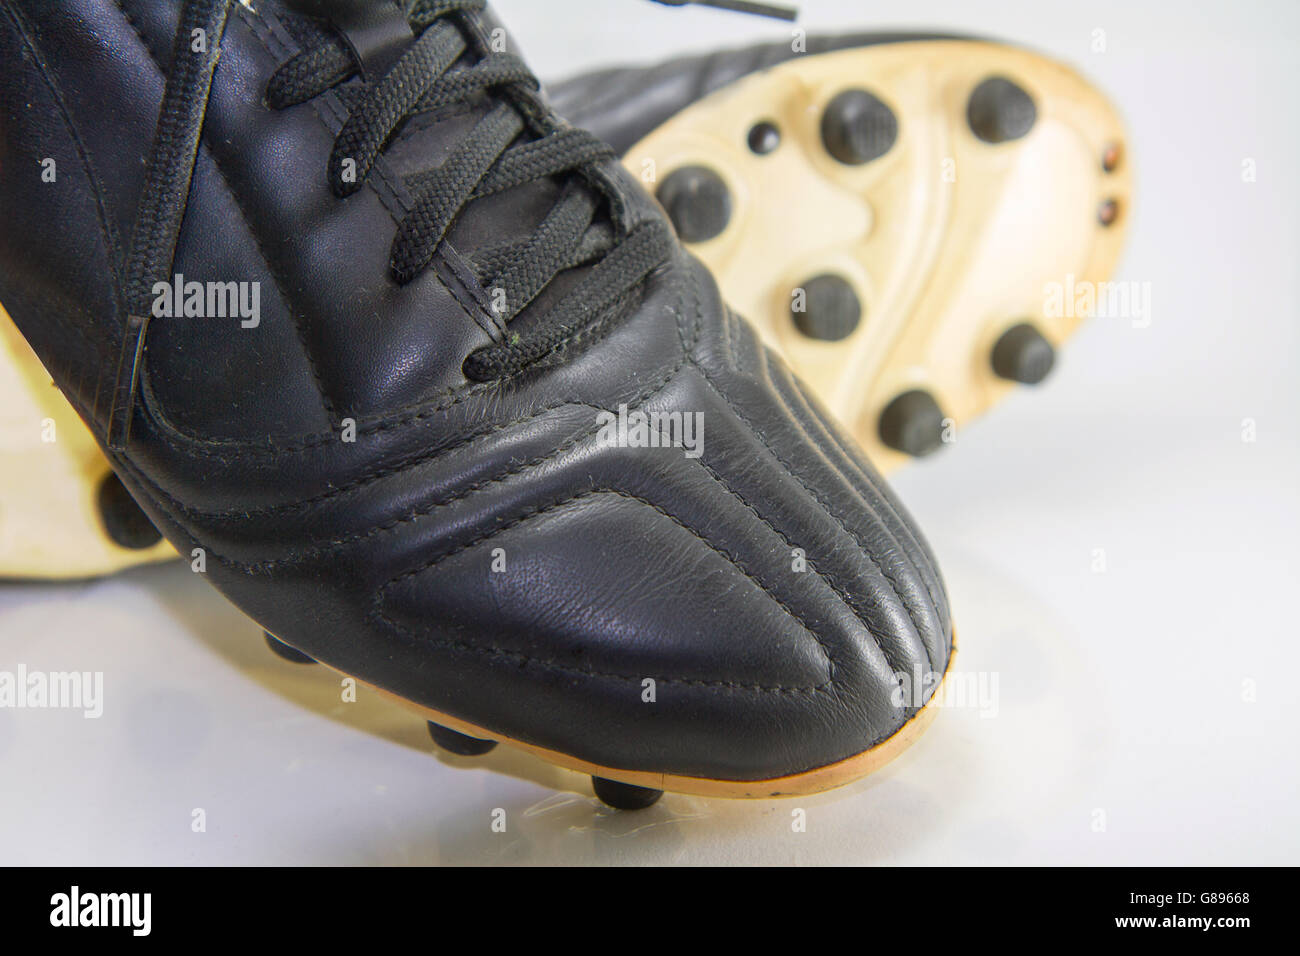 13e9ba0e6 Selective focus to button of soccer shoes / Football shoes - Stock Image